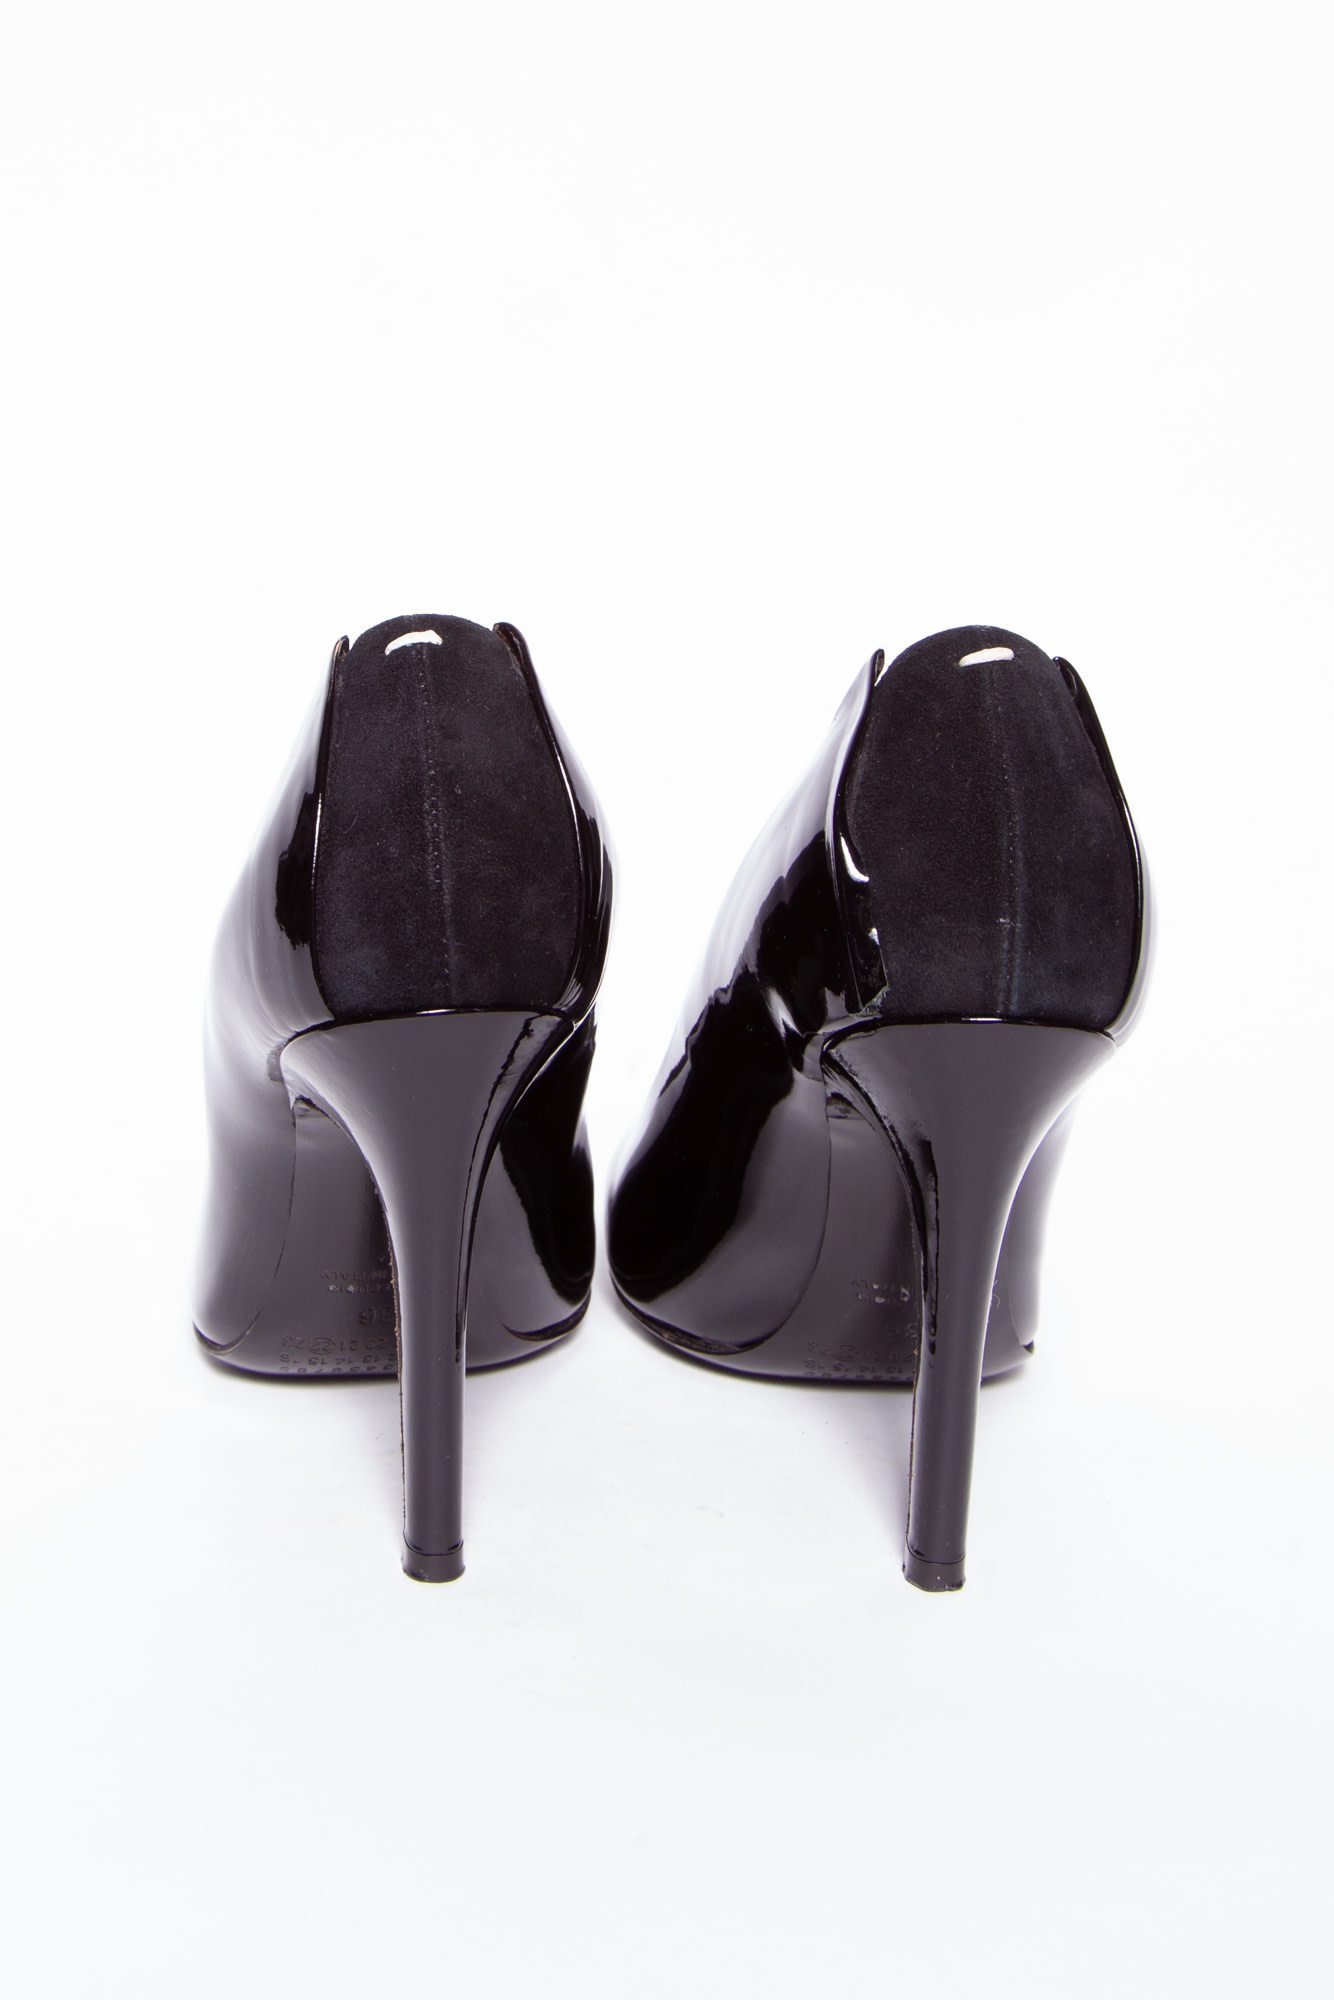 Maison Martin Margiela BLACK PATENT LEATHER PUMPS